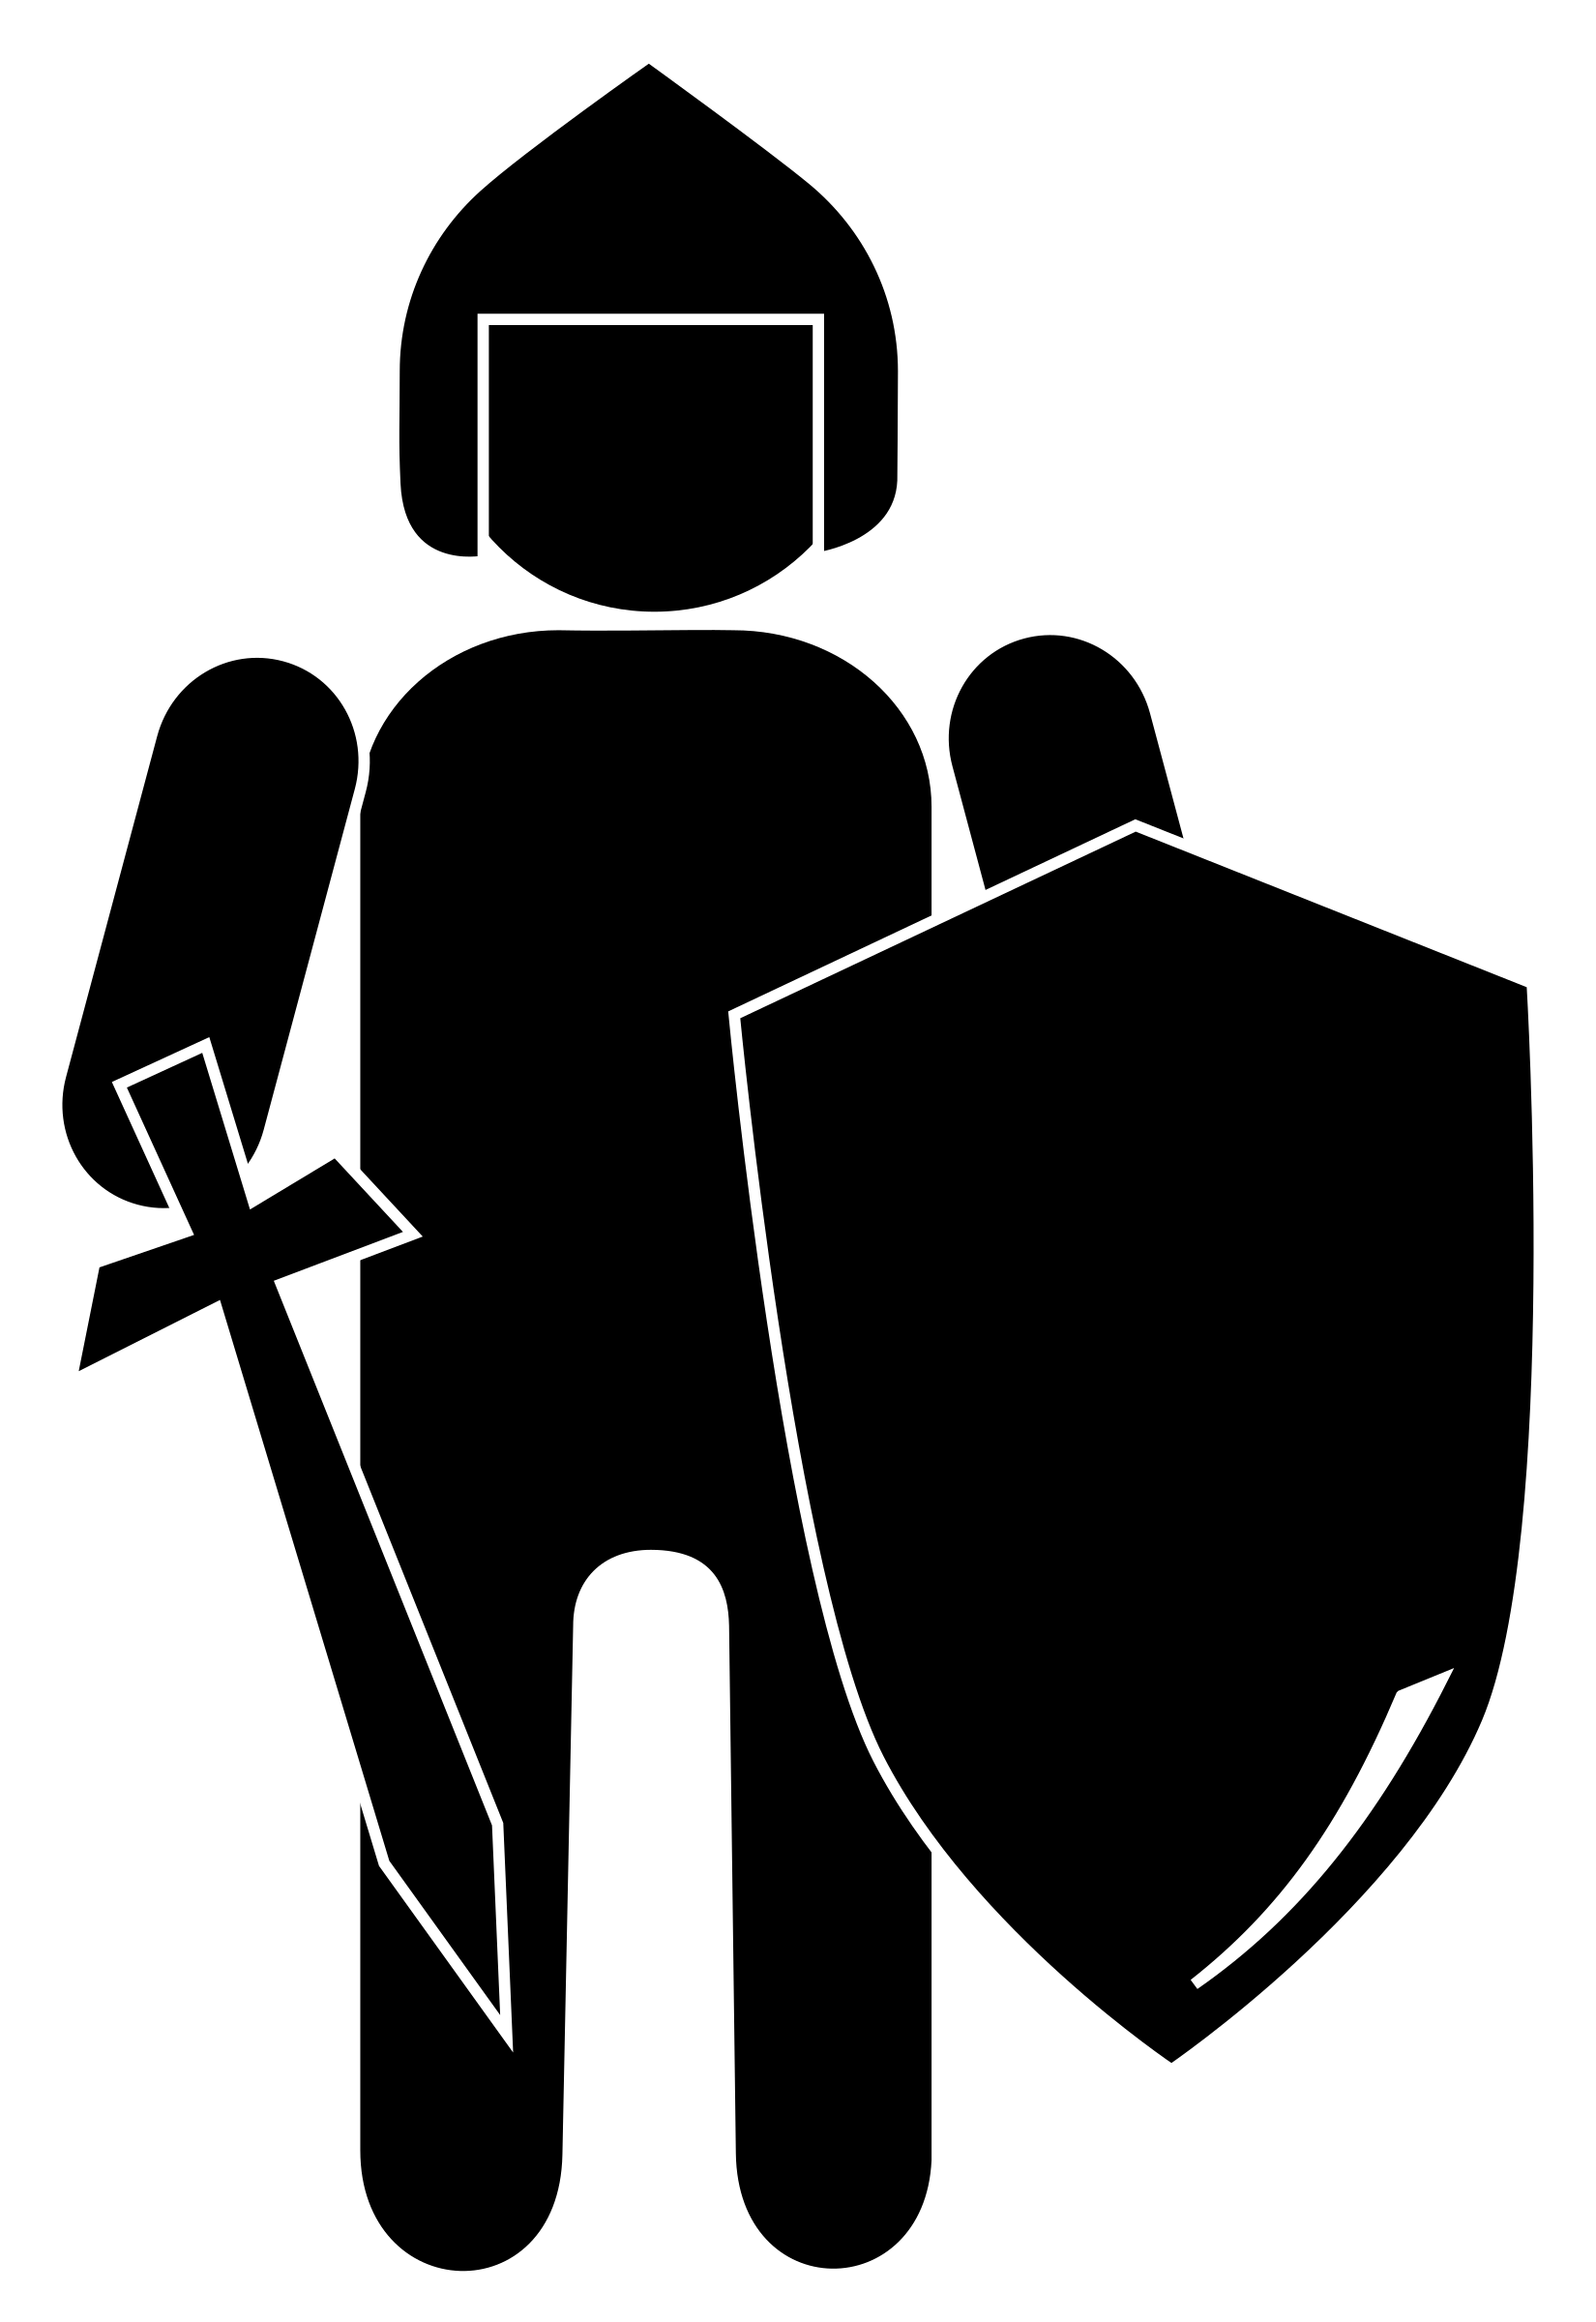 Knight svg #488, Download drawings